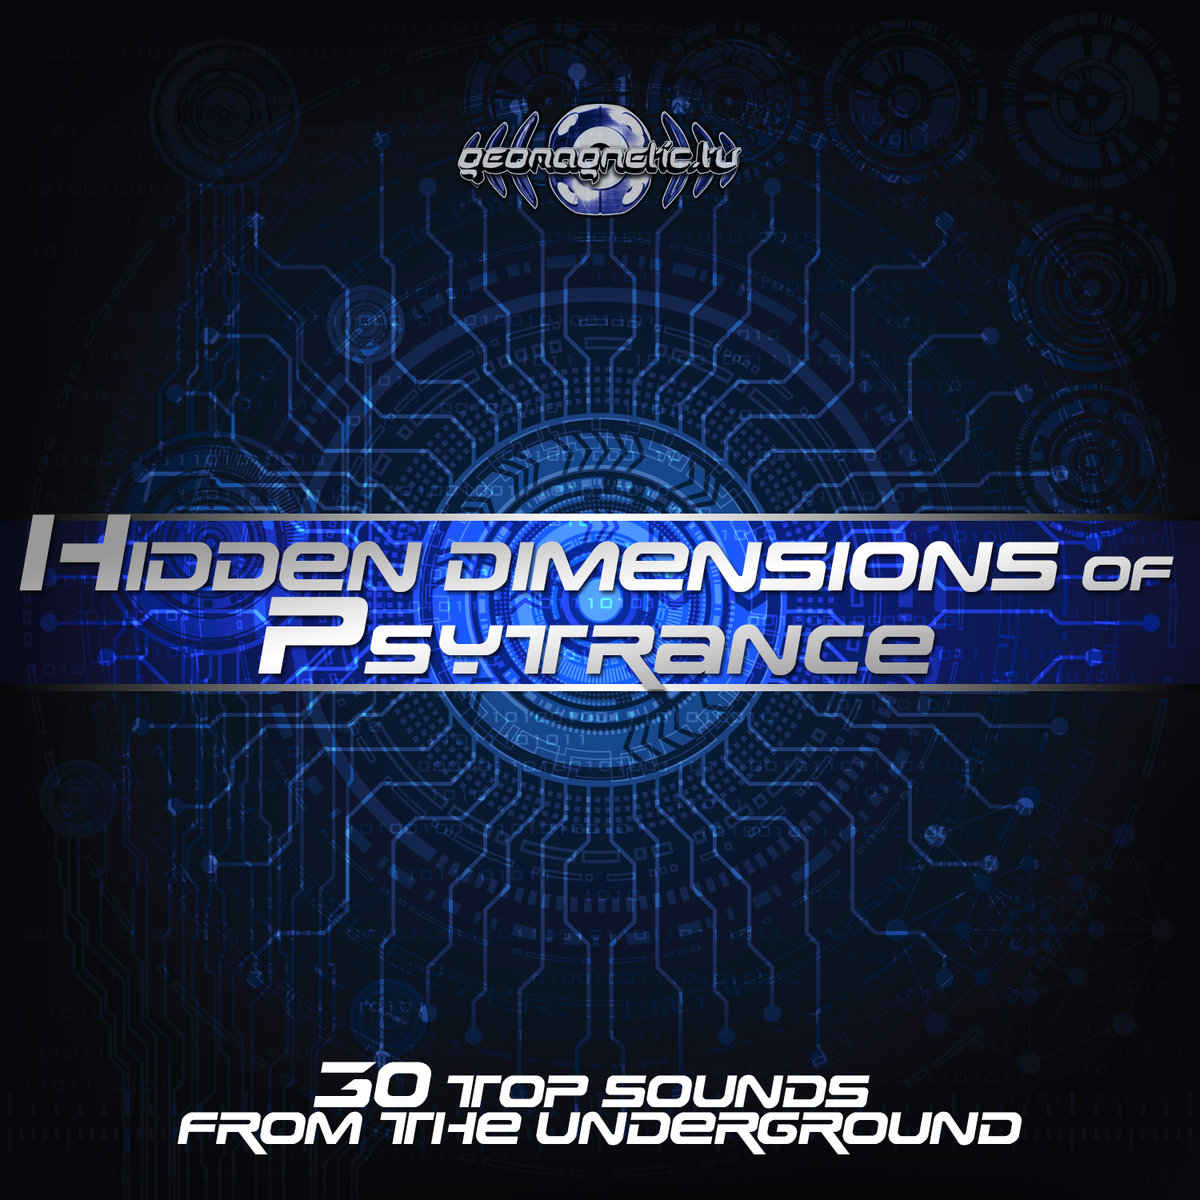 Fiery Storm - Poltergeist @ 'Various Artists - Hidden Dimensions of Psytrance (30 Top Sounds From The Underground)' album (electronic, goa)